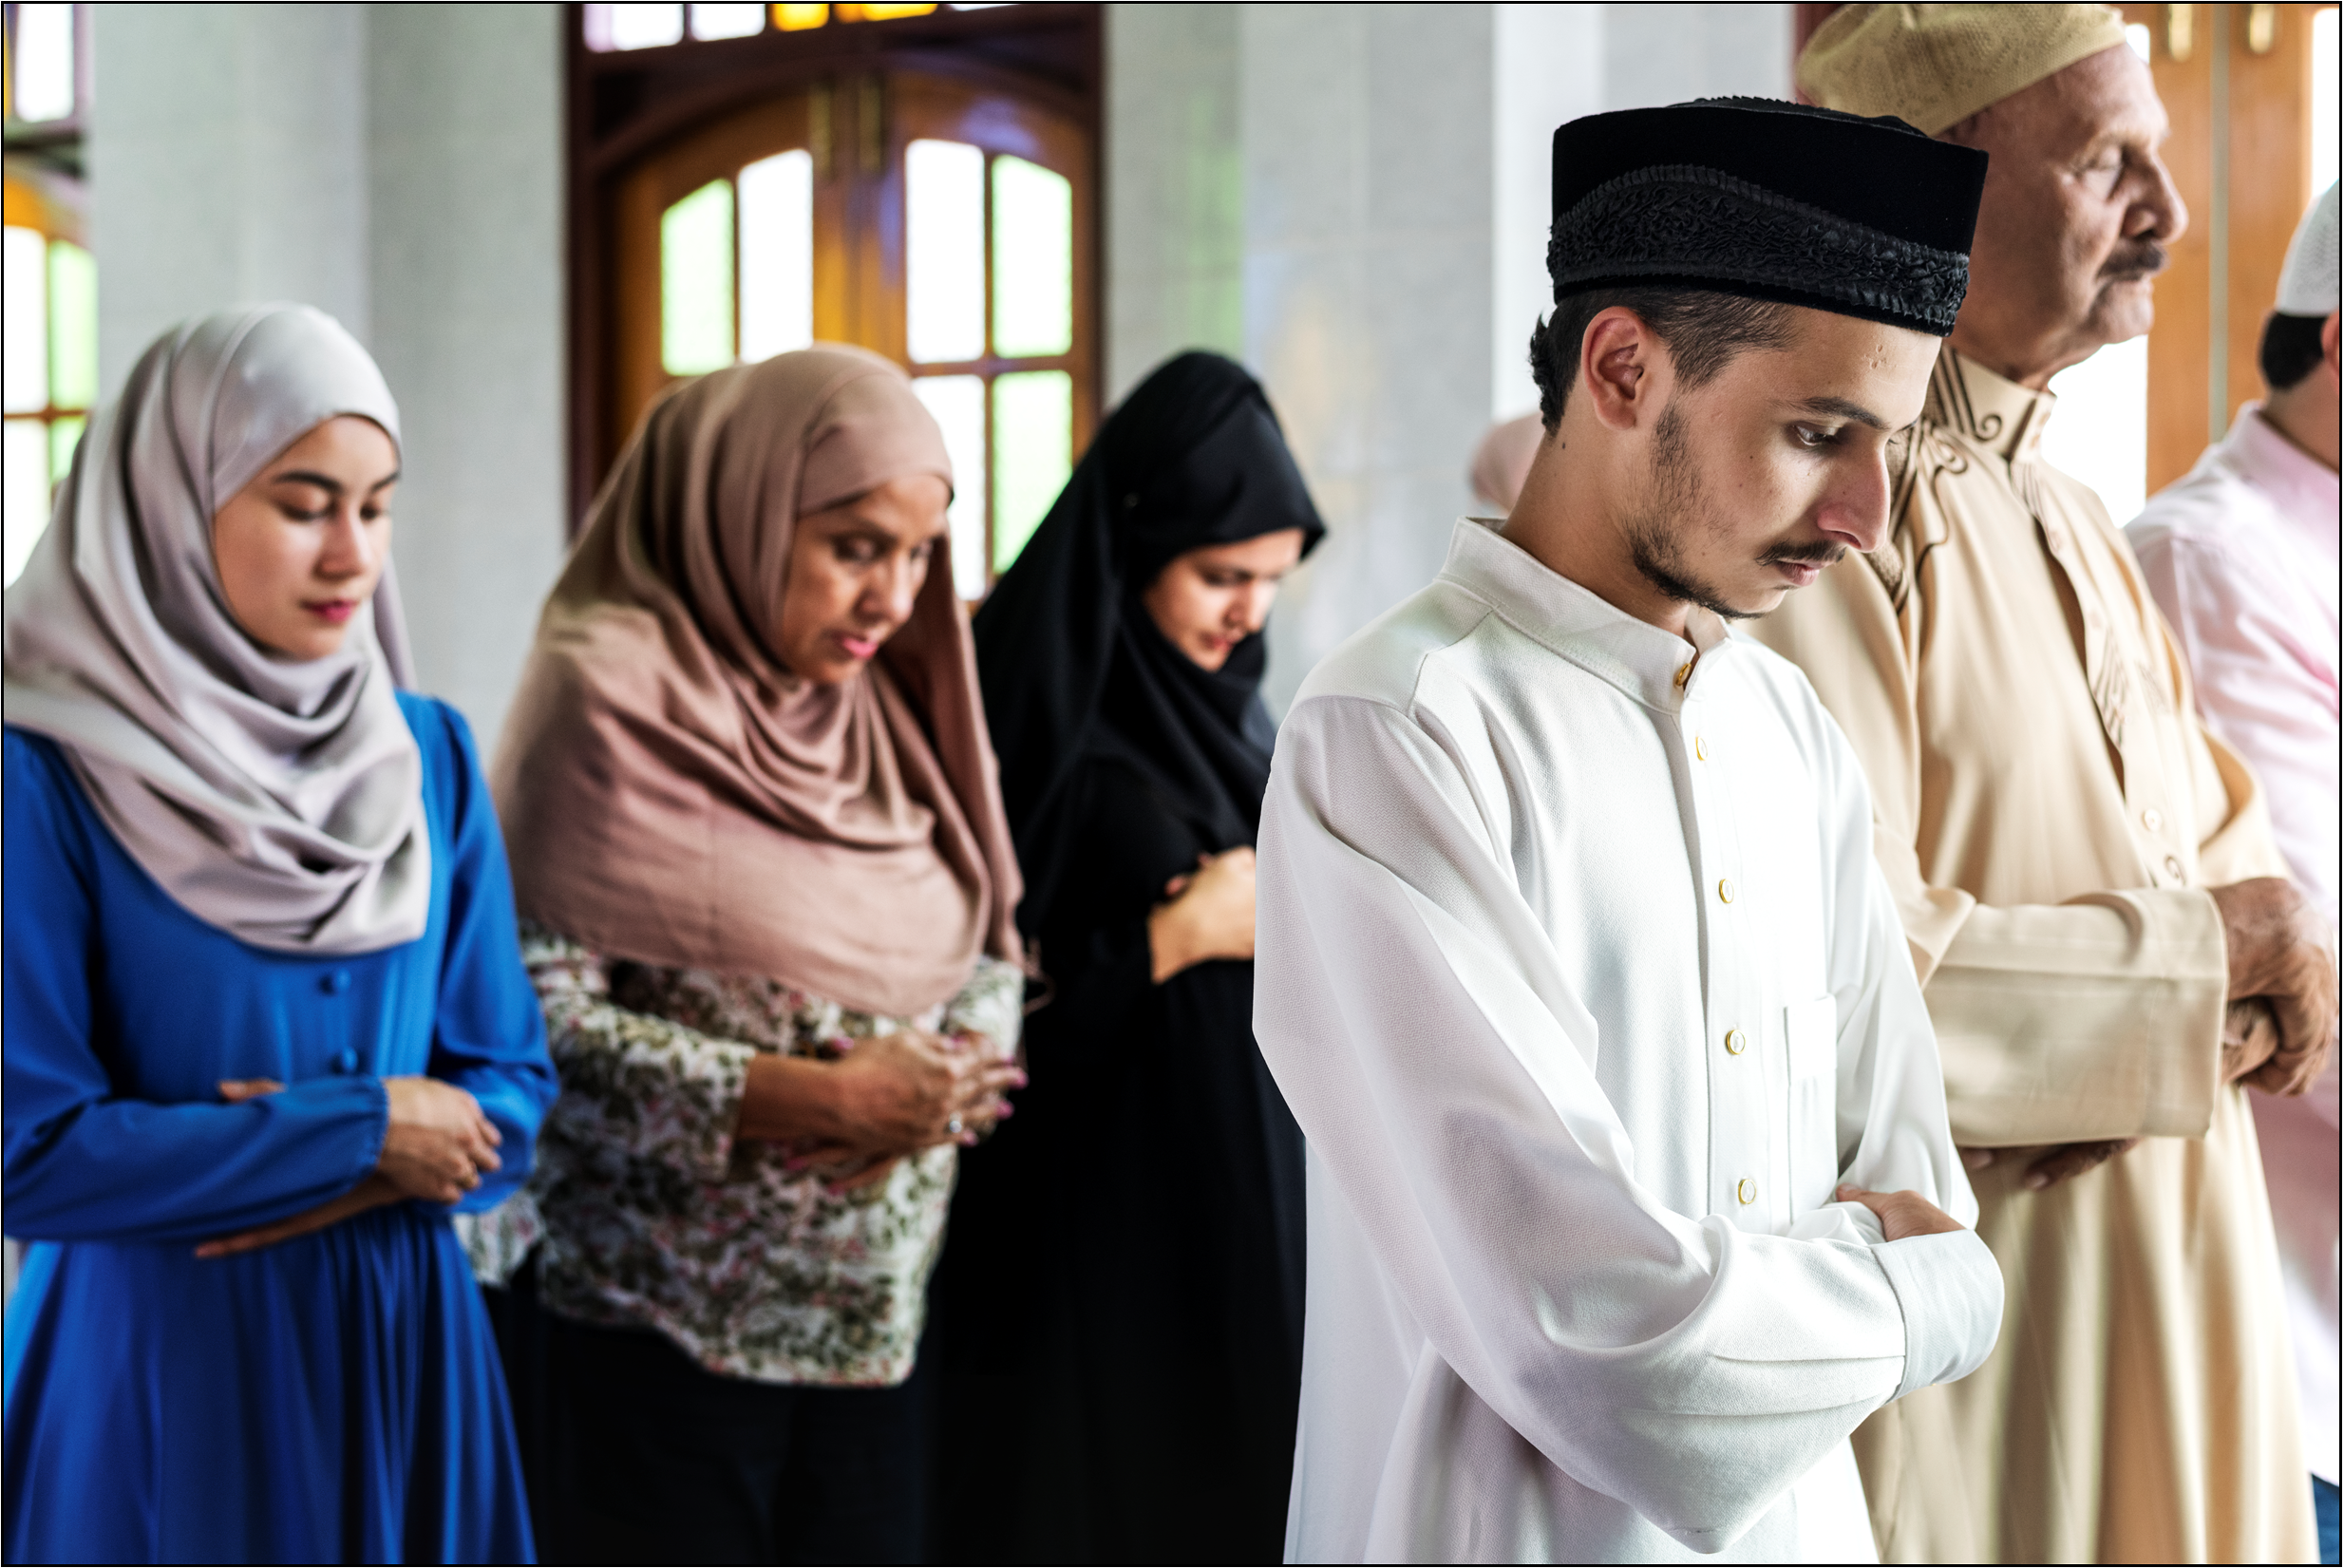 People in Mosque__Intercede March-April